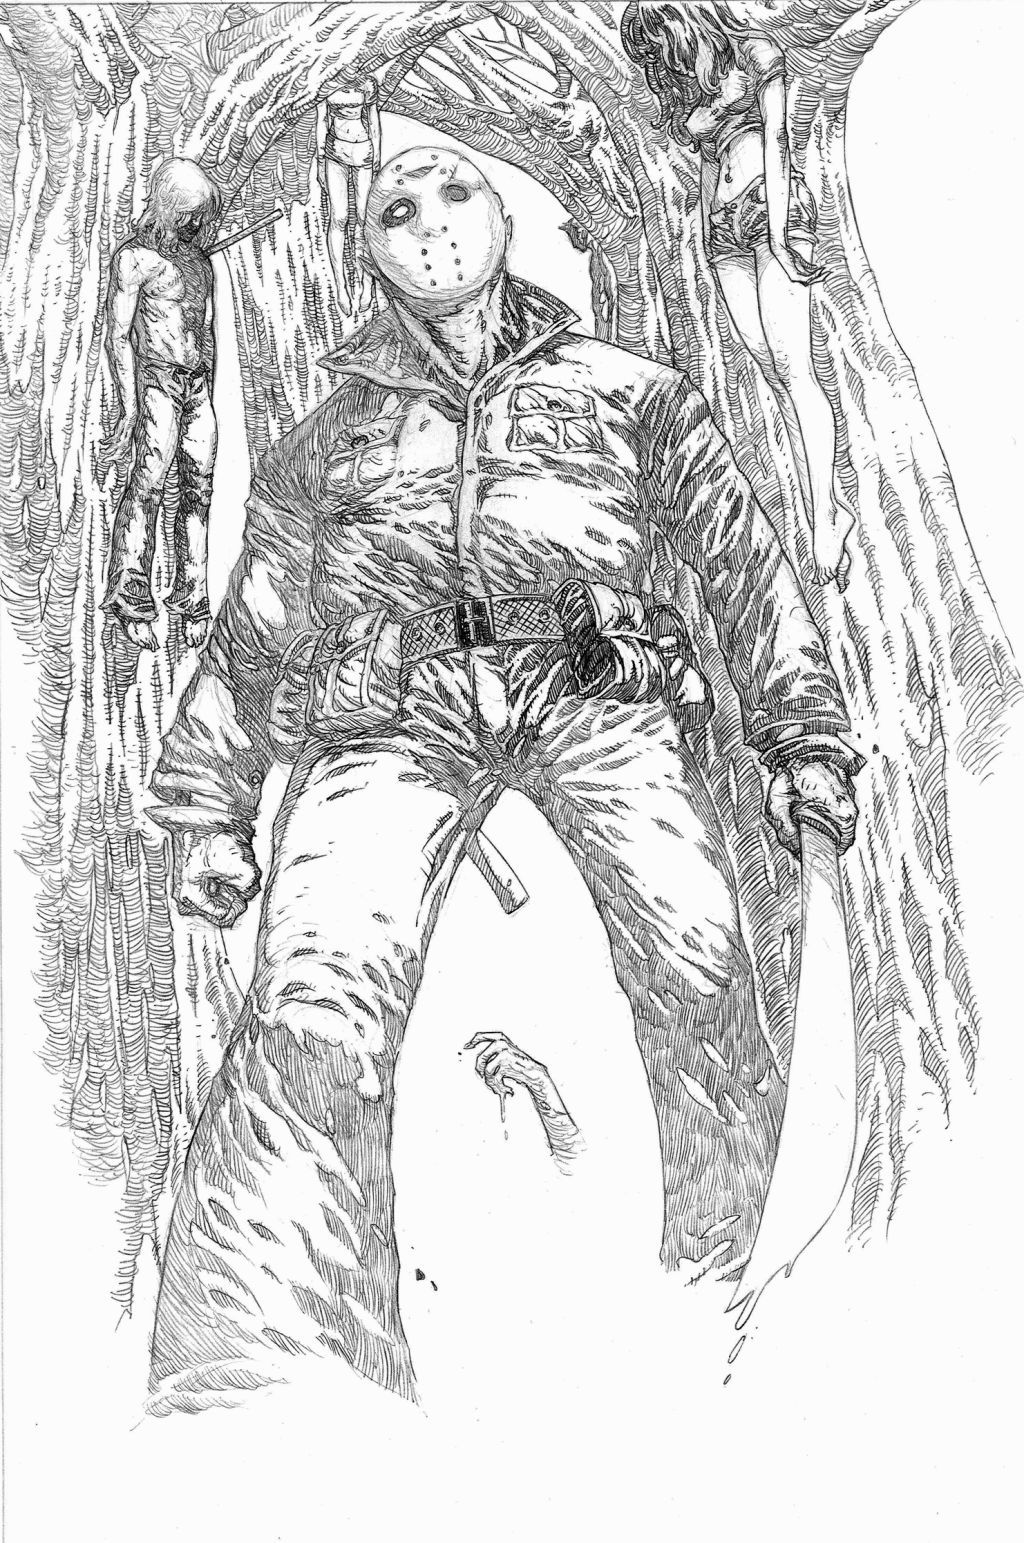 Jason Voorhees Coloring Pages | Coloring Pages | Pinterest